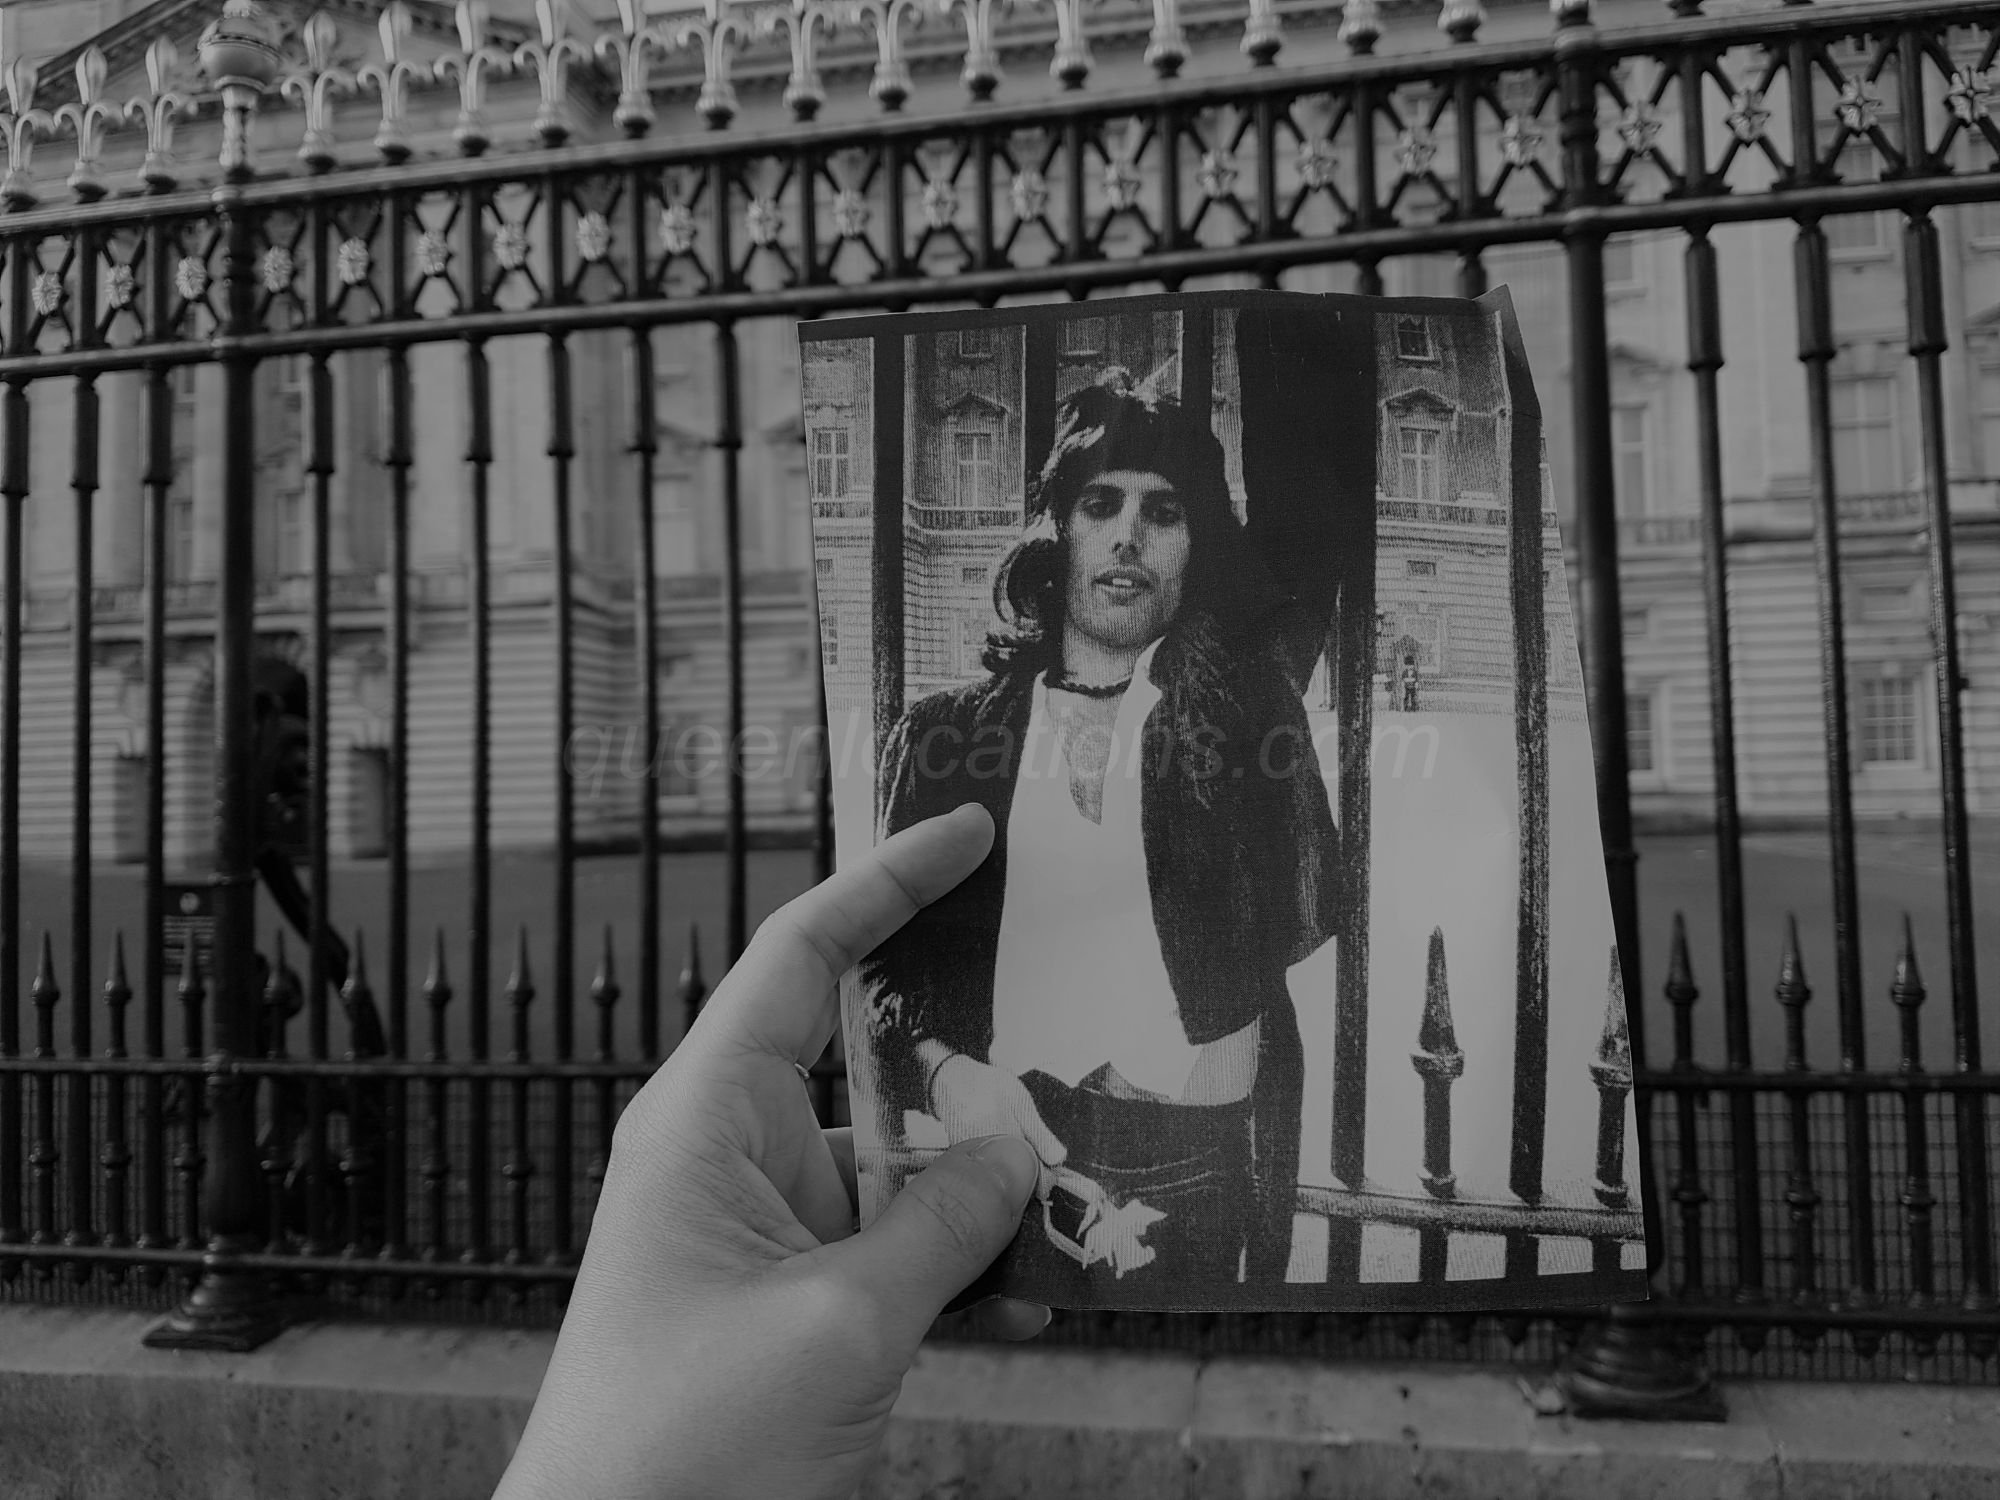 Buckingham Palace Freddie Mercury